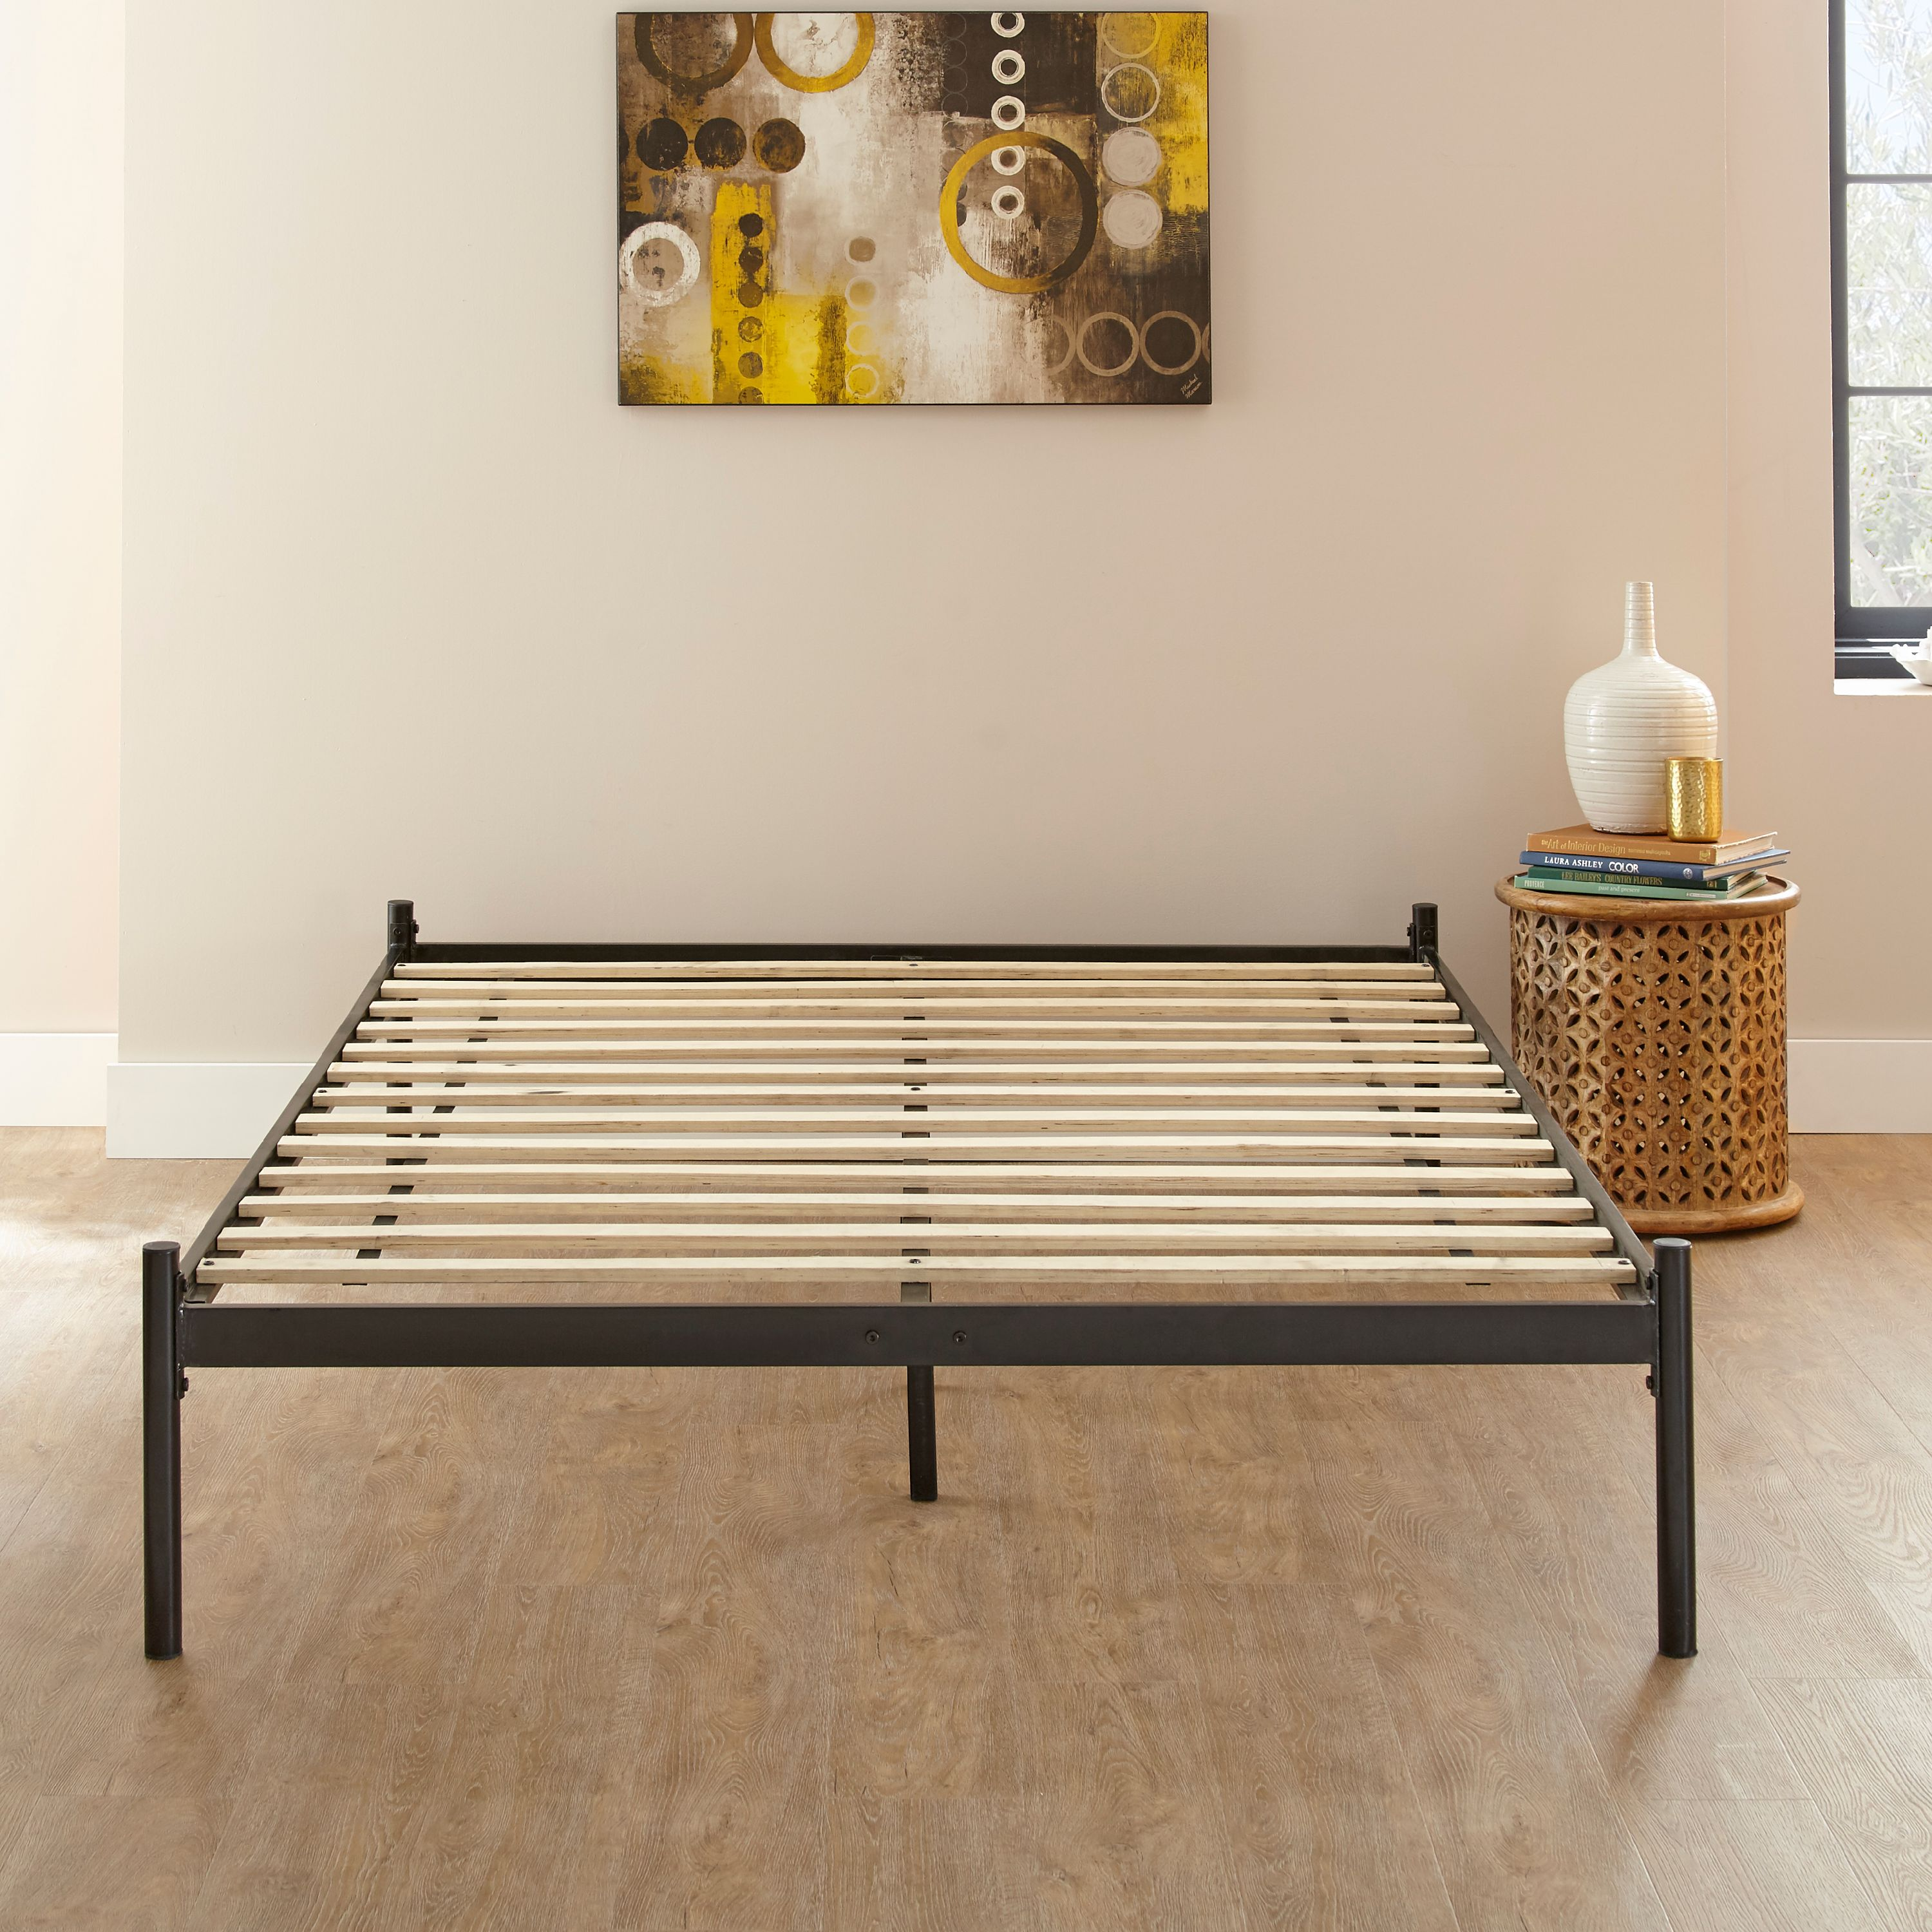 Premier Urban Loft Black Metal Platform Base Foundation Bed Frame, Multiple Sizes